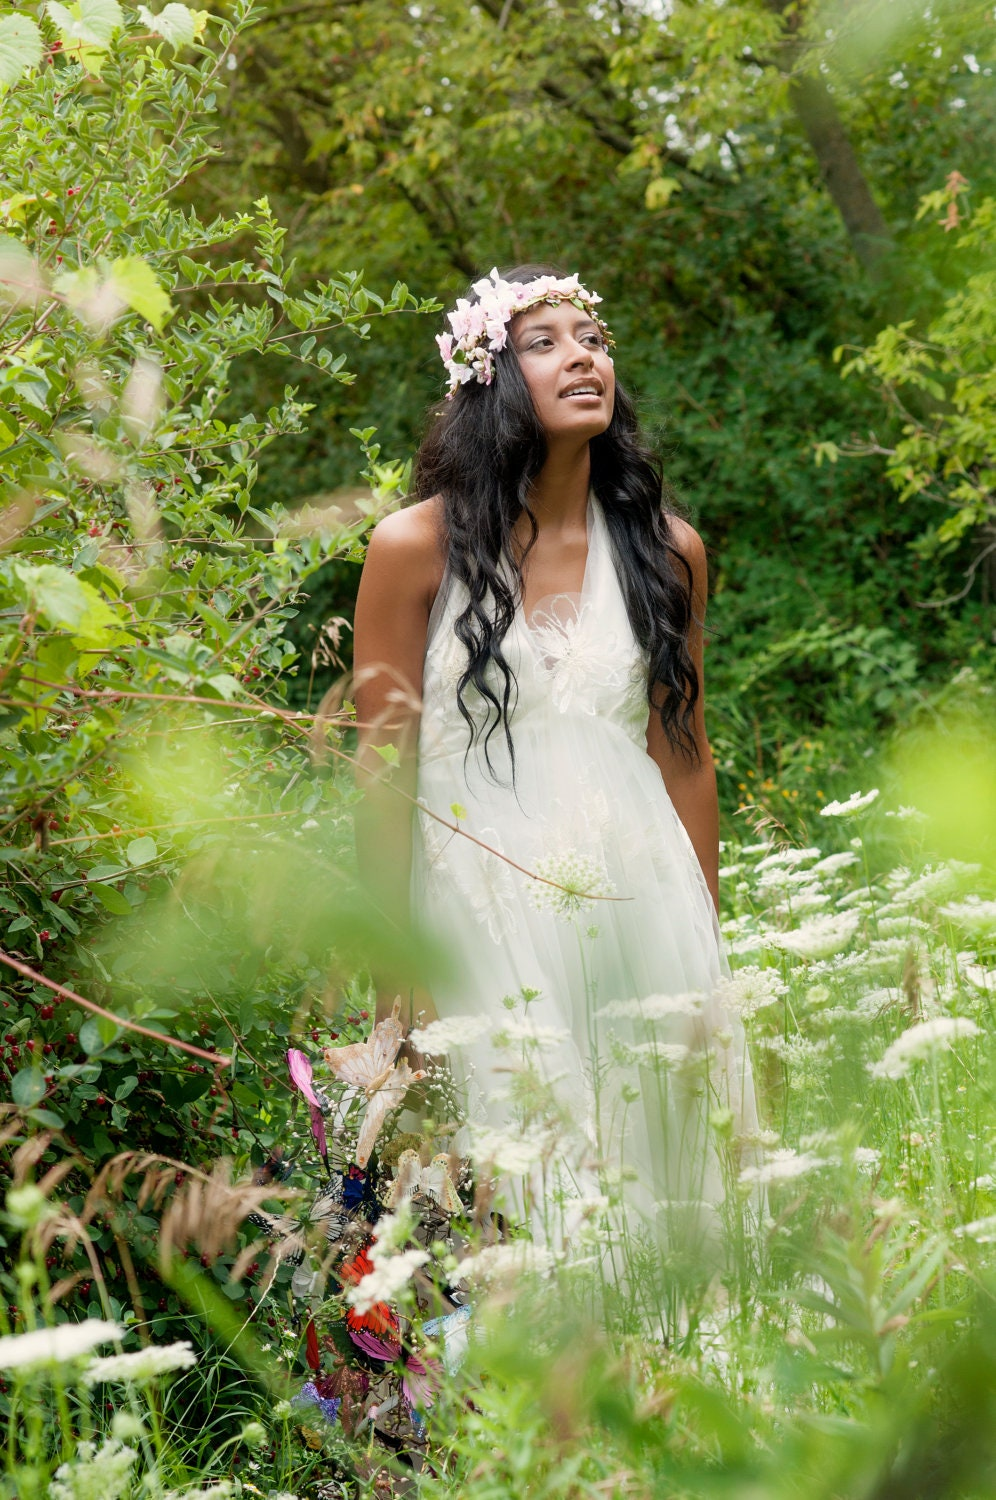 Wood nymph Fairy Floral wedding headpeice by ...